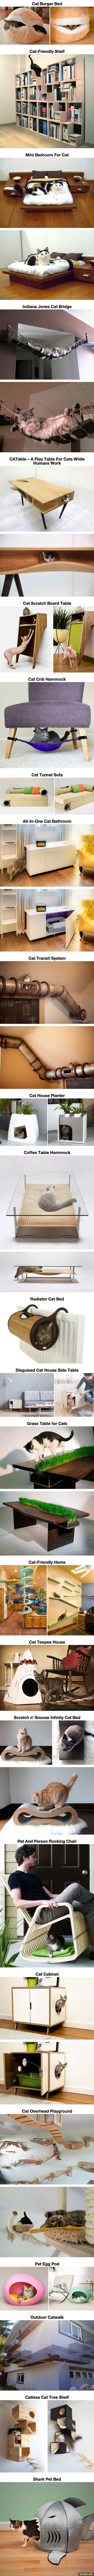 25 Awesome Furniture Design Ideas For Cat Lovers | DailyFailCenter